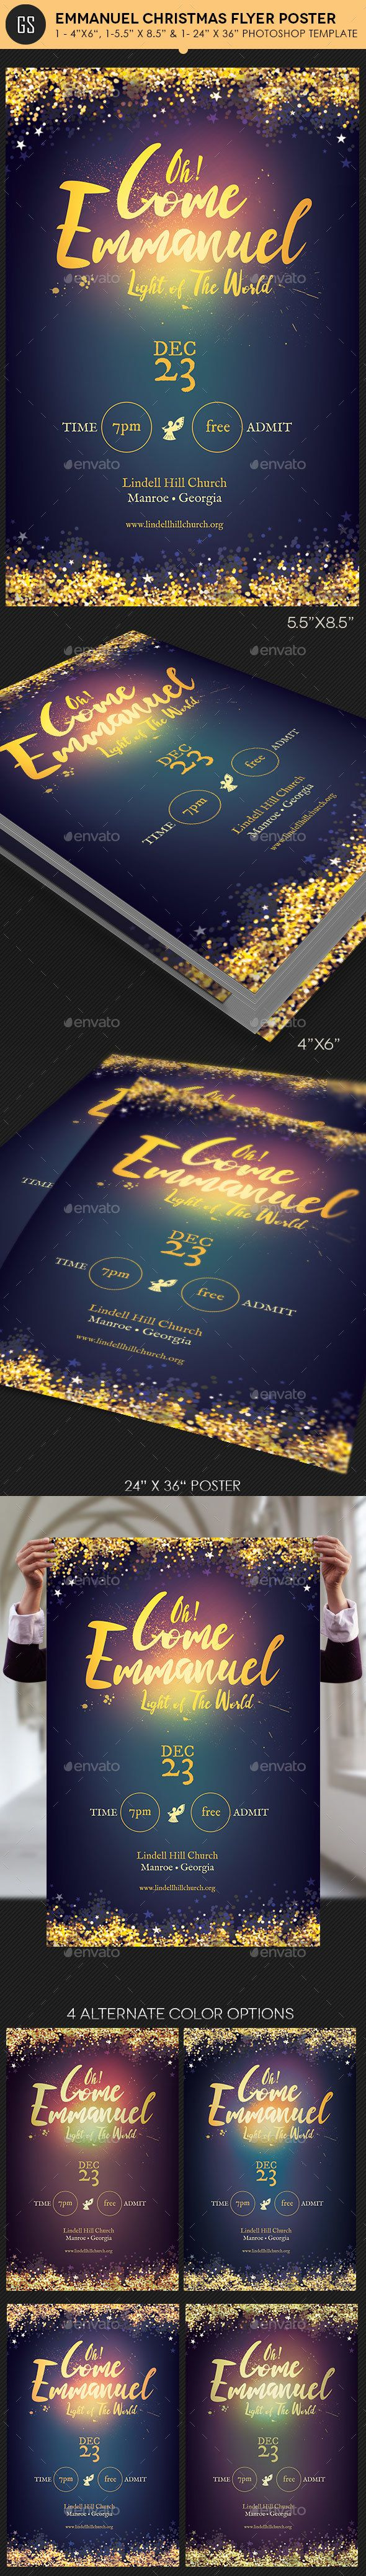 Emmanuel Christmas Cantata Flyer / Poster Template PSD